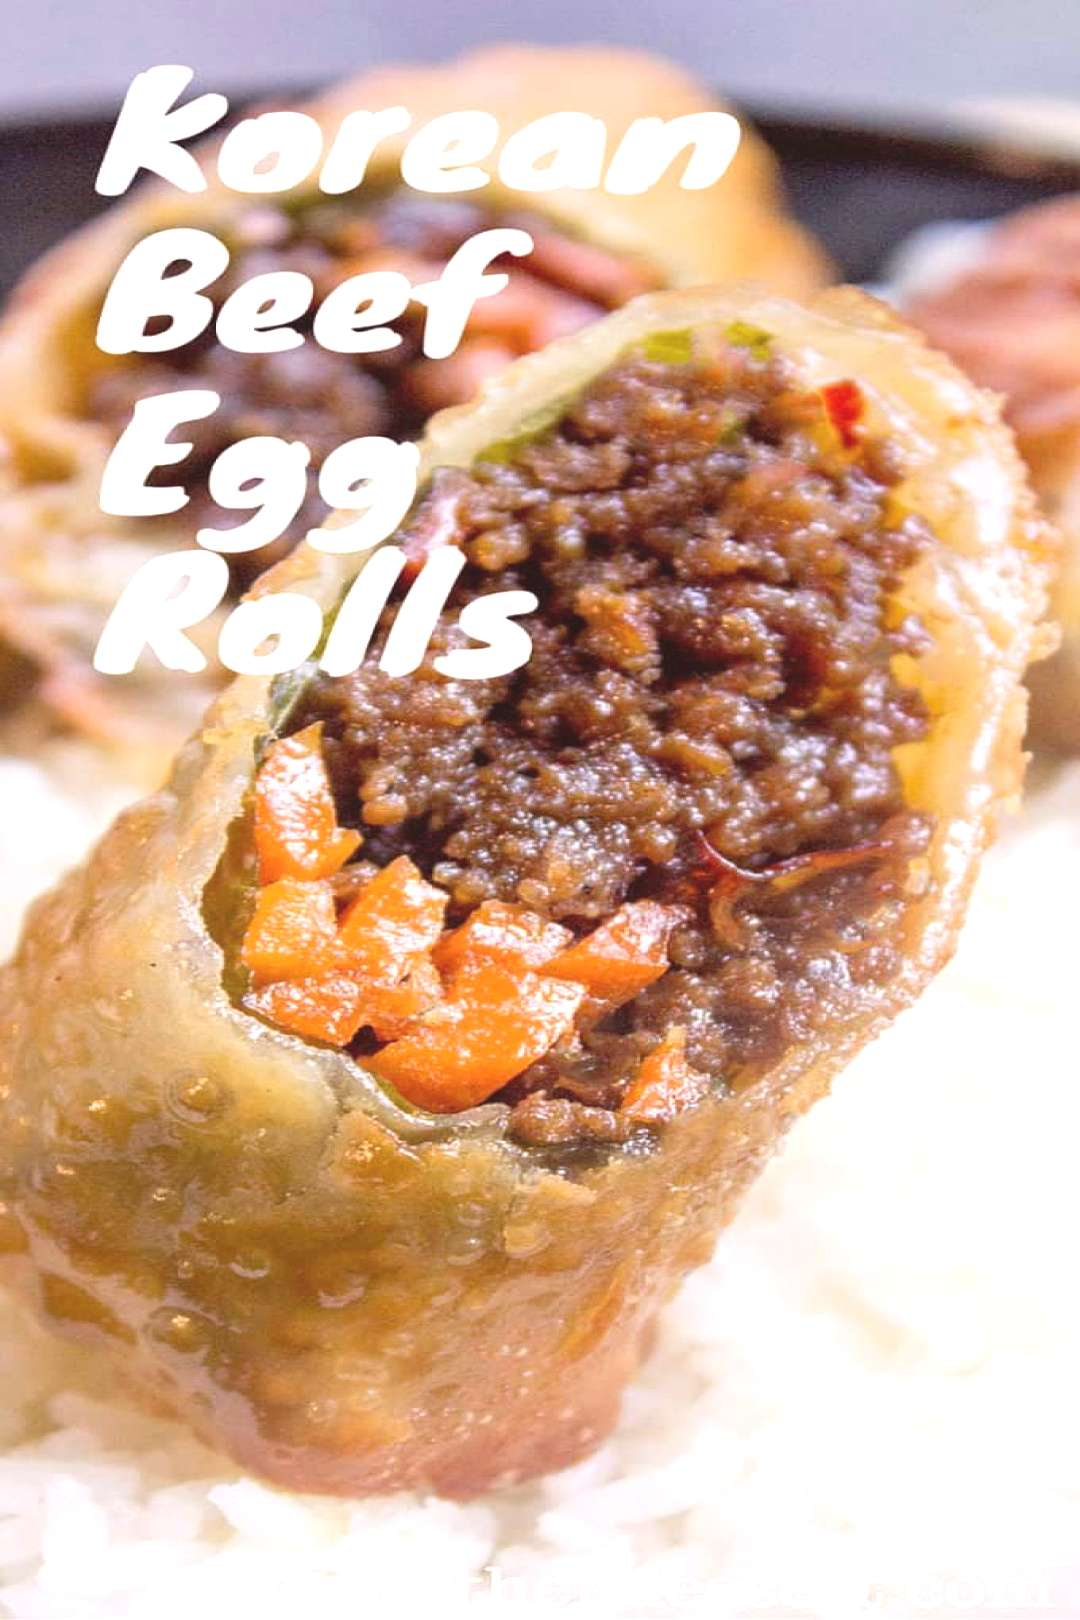 Korean Ground Beef Egg Rolls made with just a few ingredients are a great party food and perfect us